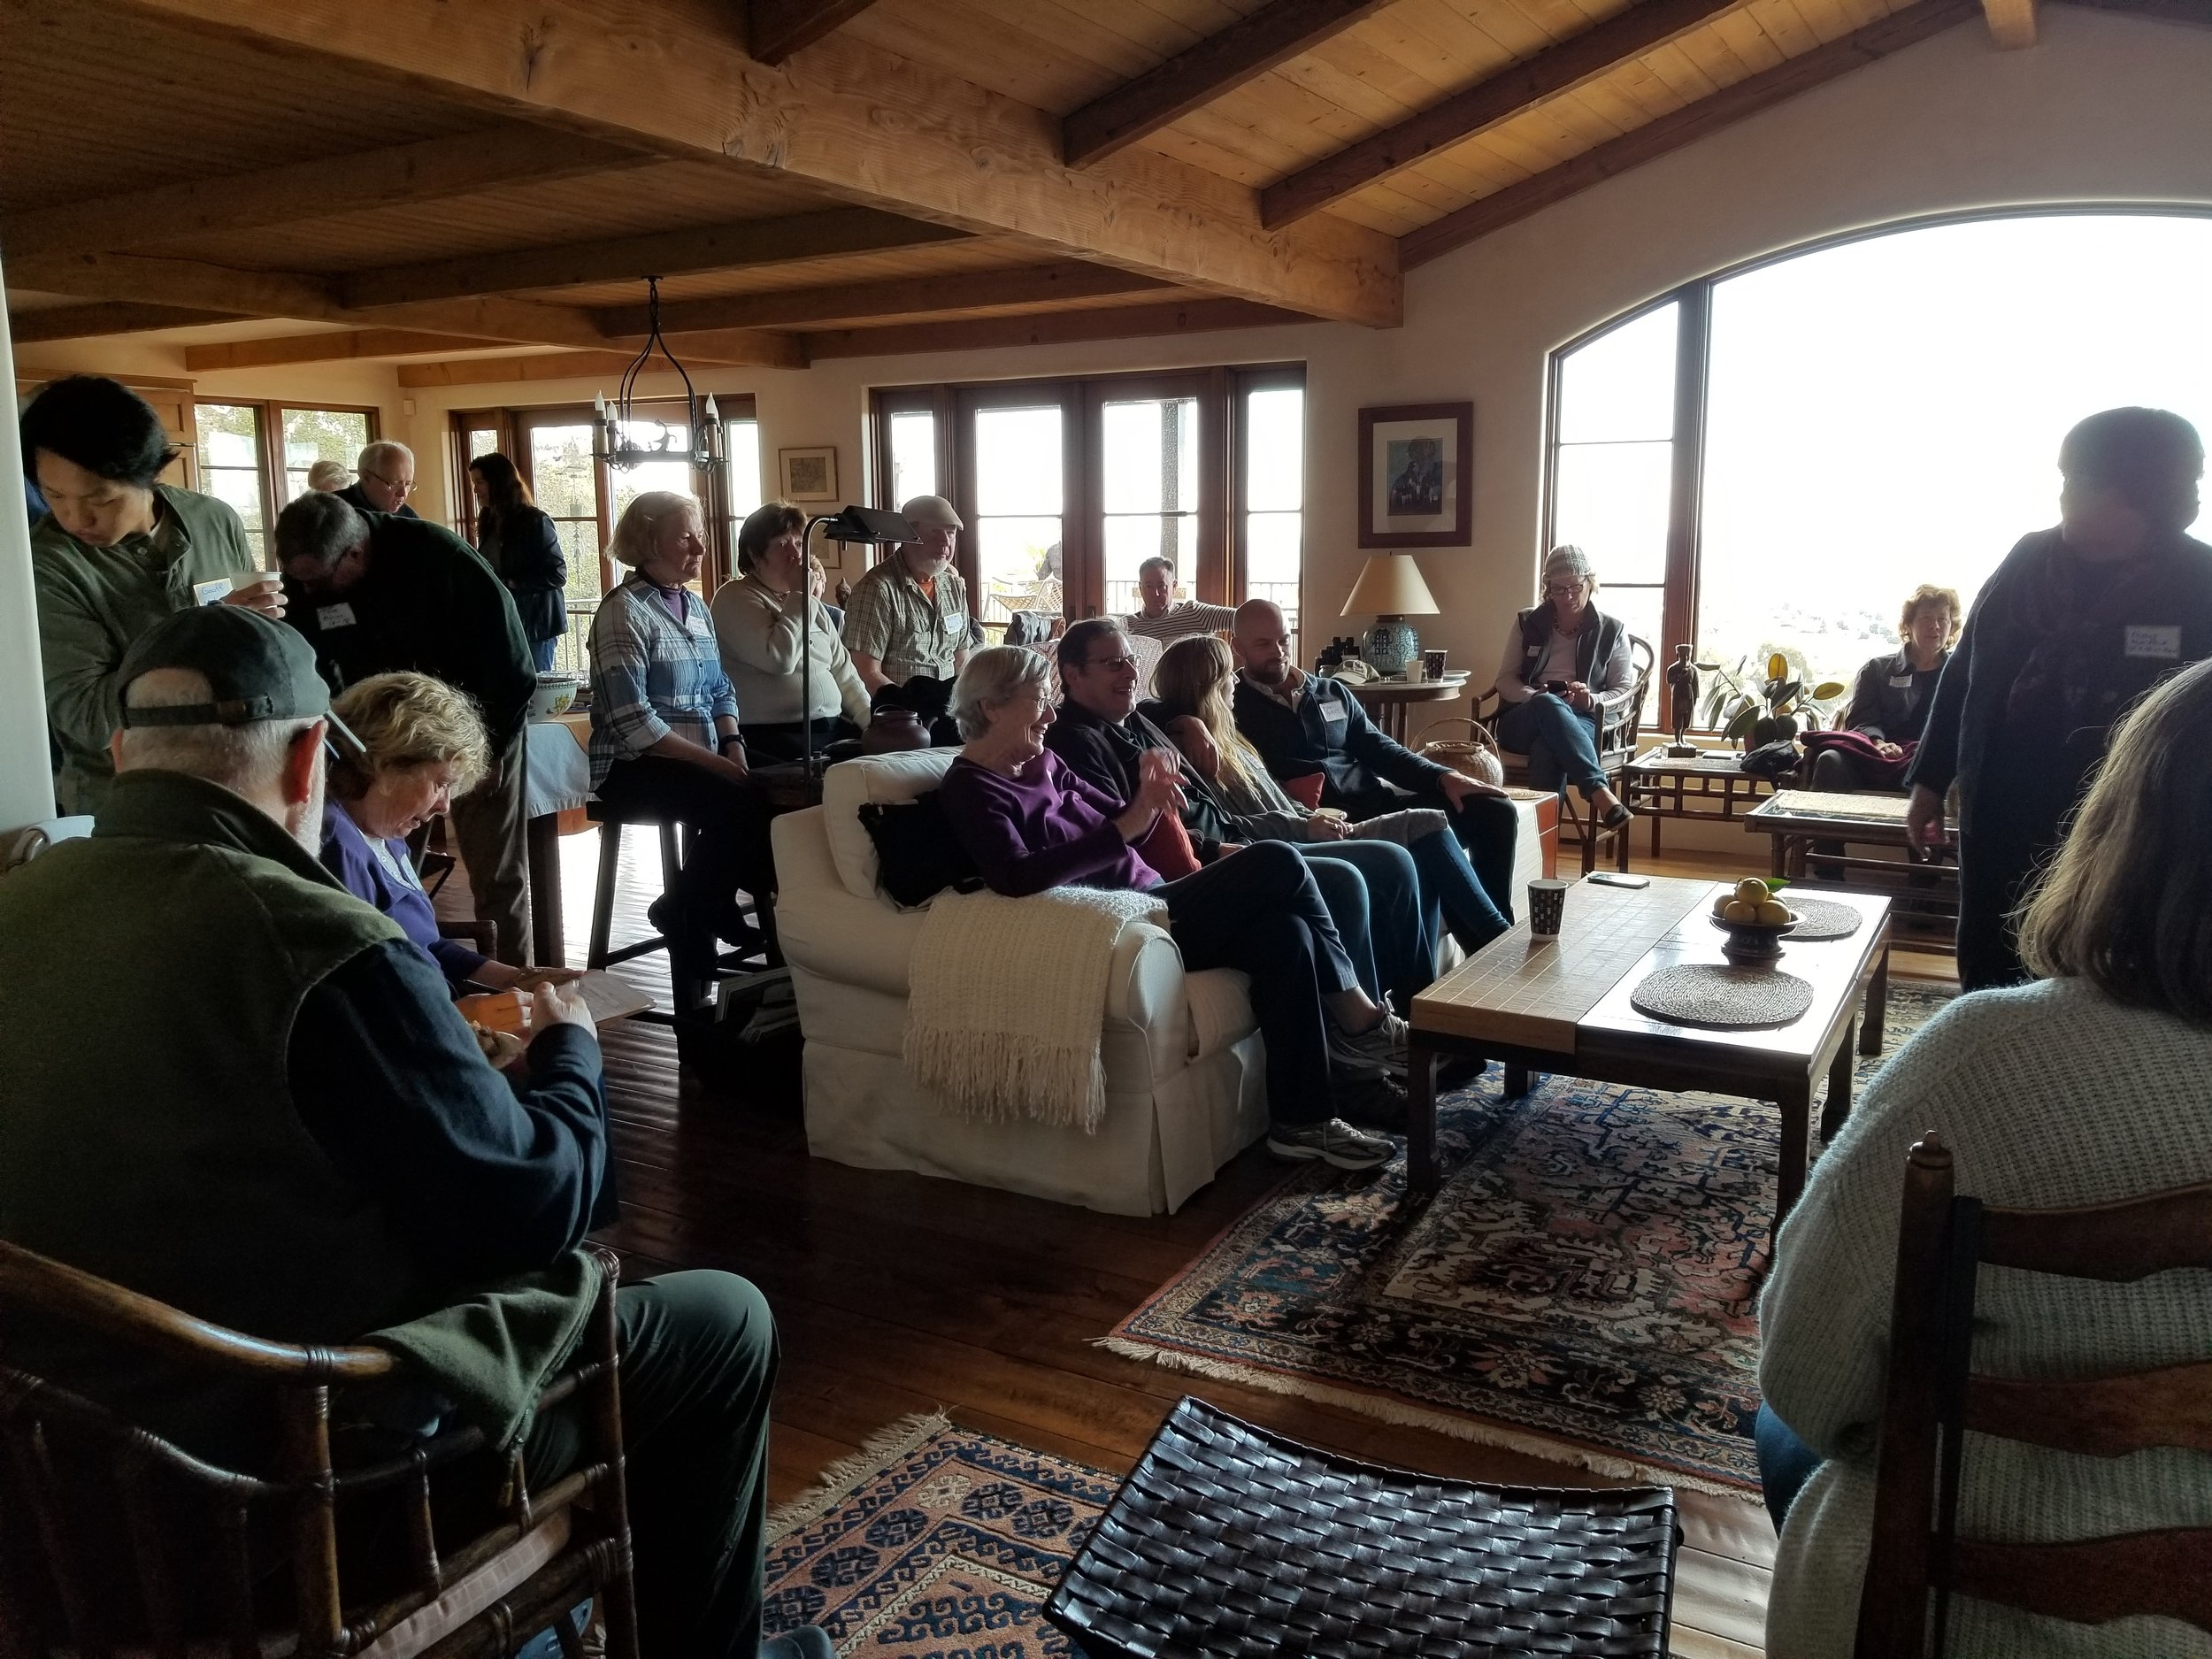 Annual Meeting - SATURDAY, FEBRUARY 9, 201910:30am-12:00pm @ A private residence in Santa BarbaraAs we do every year, we called our members together for a potluck brunch and review of our past year, a look ahead at the upcoming year, to say thanks to this last year's board, and to elect our President and board members for the coming year.